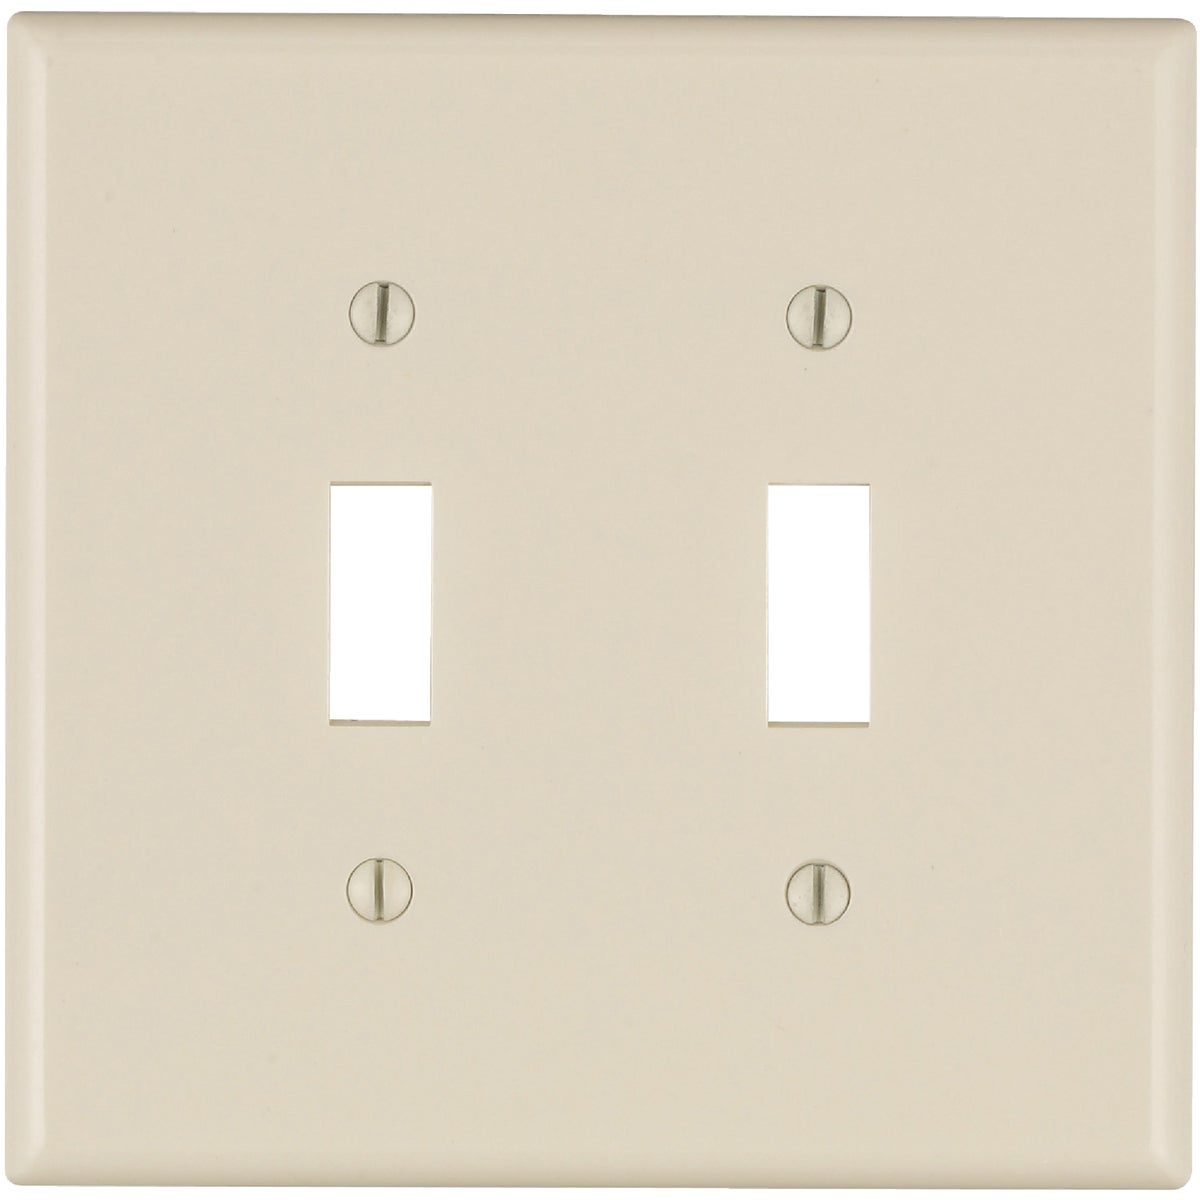 LT ALM 2TGL WALLPLATE - 005-80509-00T by Leviton Mfg Co